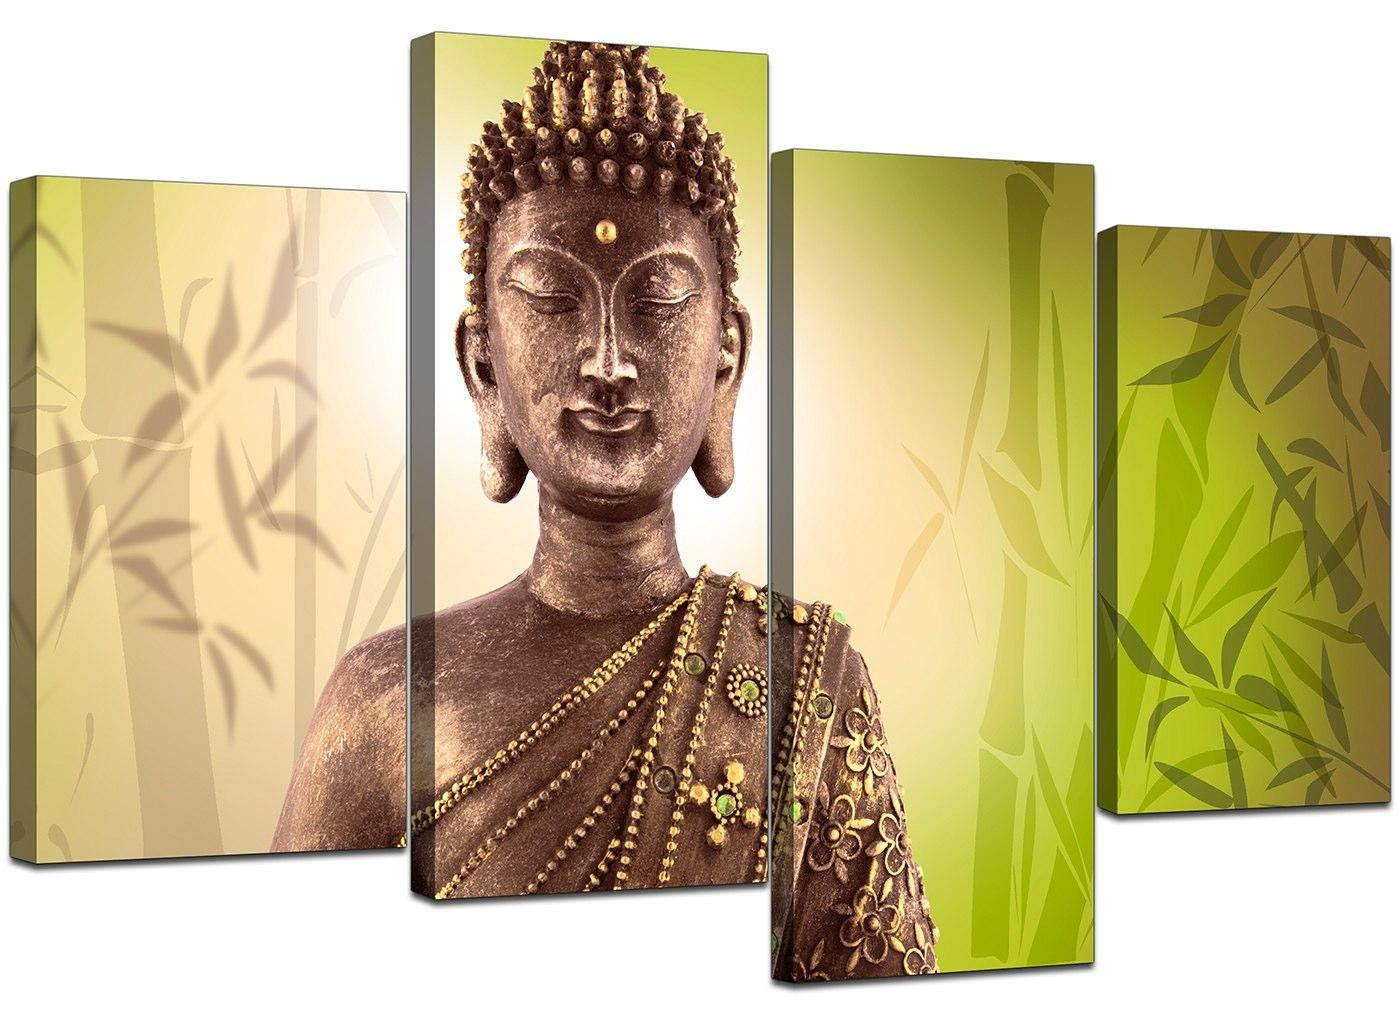 20 best collection of large buddha wall art wall art ideas for Buddha decor